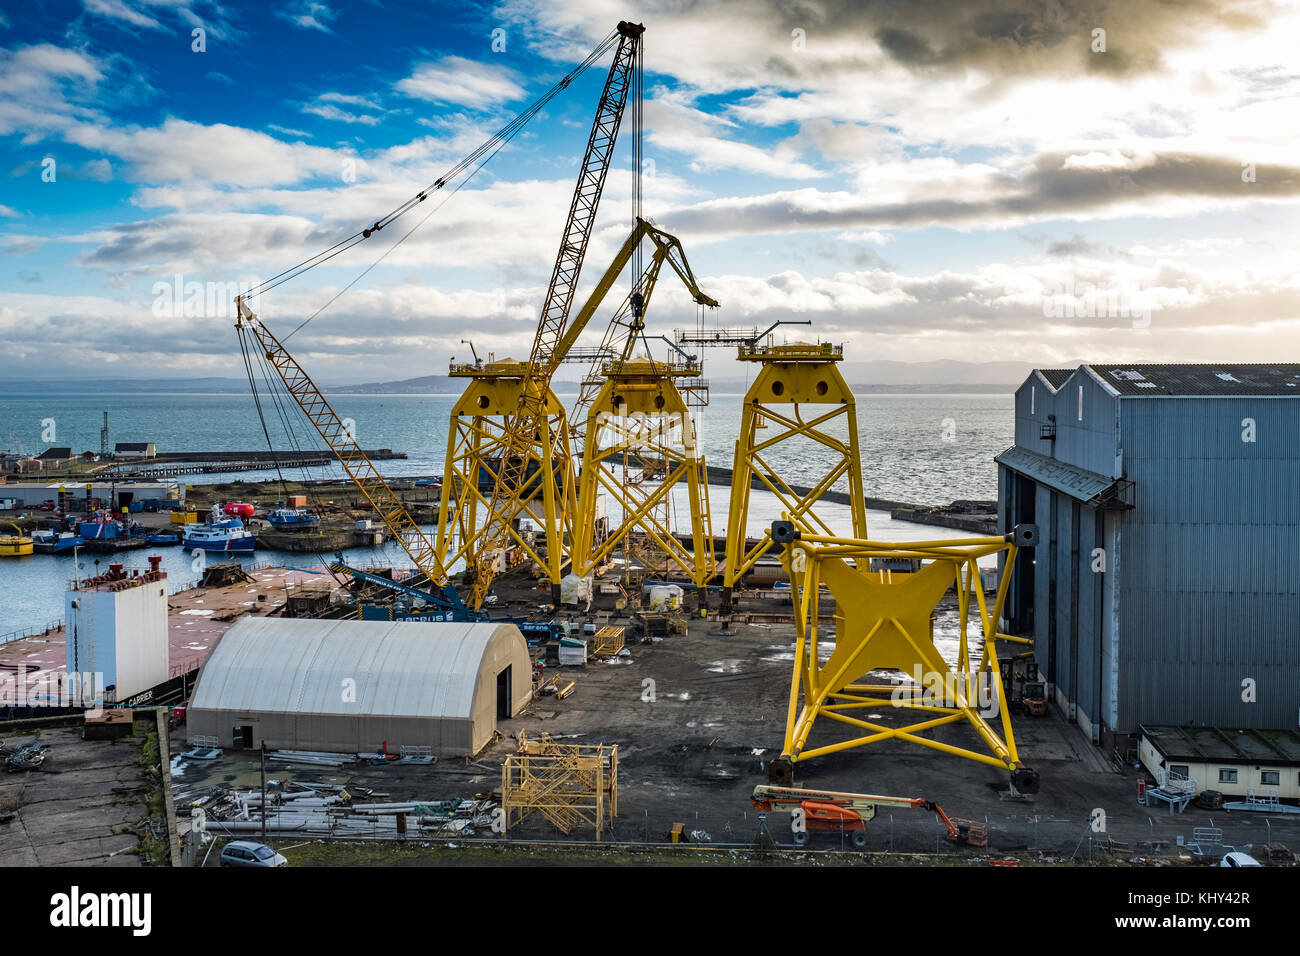 View of Burntisland Fabrications yard at Burntisland in Fife , Scotland, UK. They fabricate platforms and modules - Stock Image